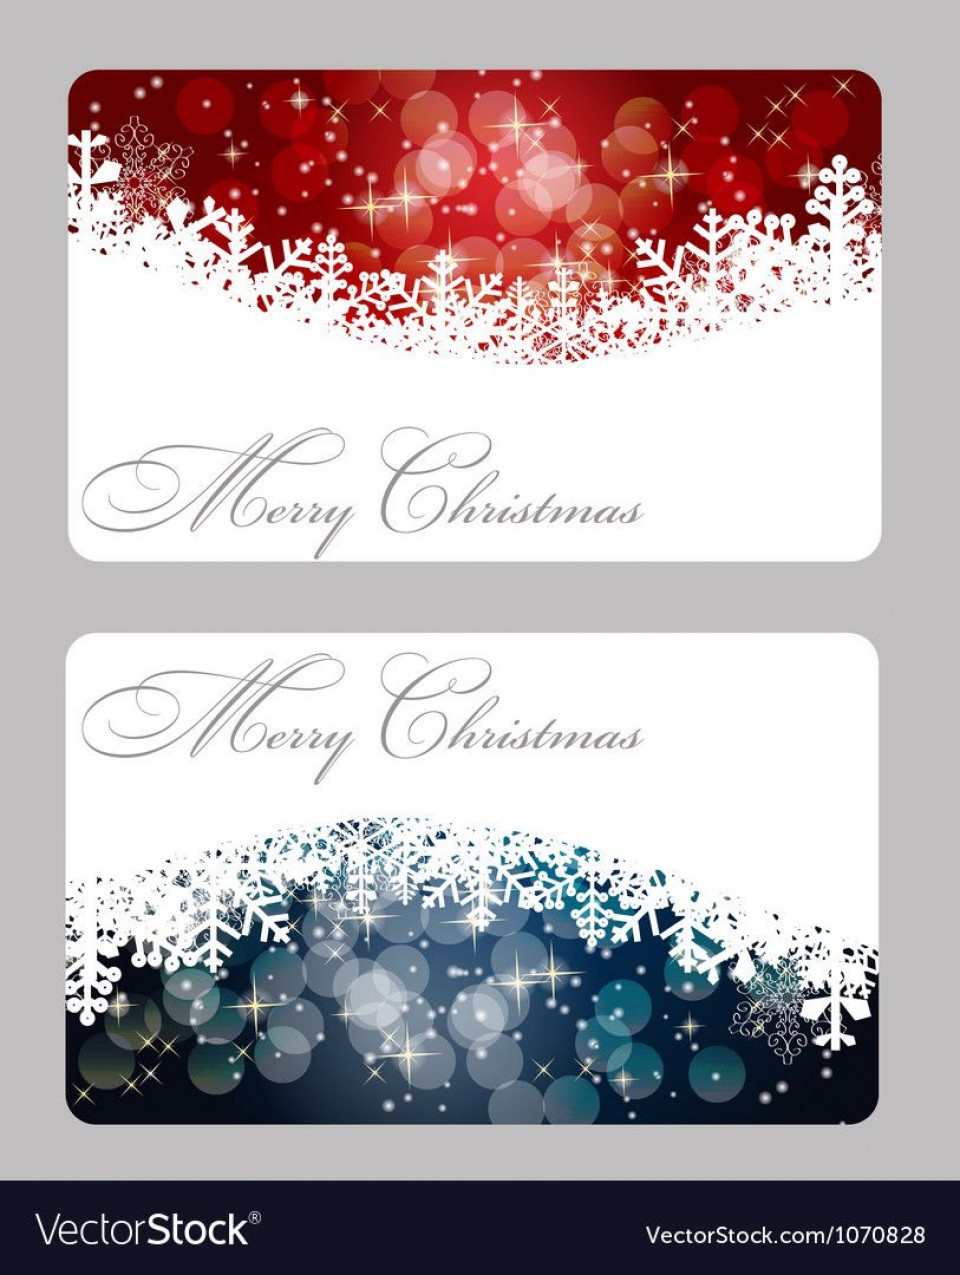 009 Dreaded Christma Card Template Free Download Idea  Photo Xma Place960